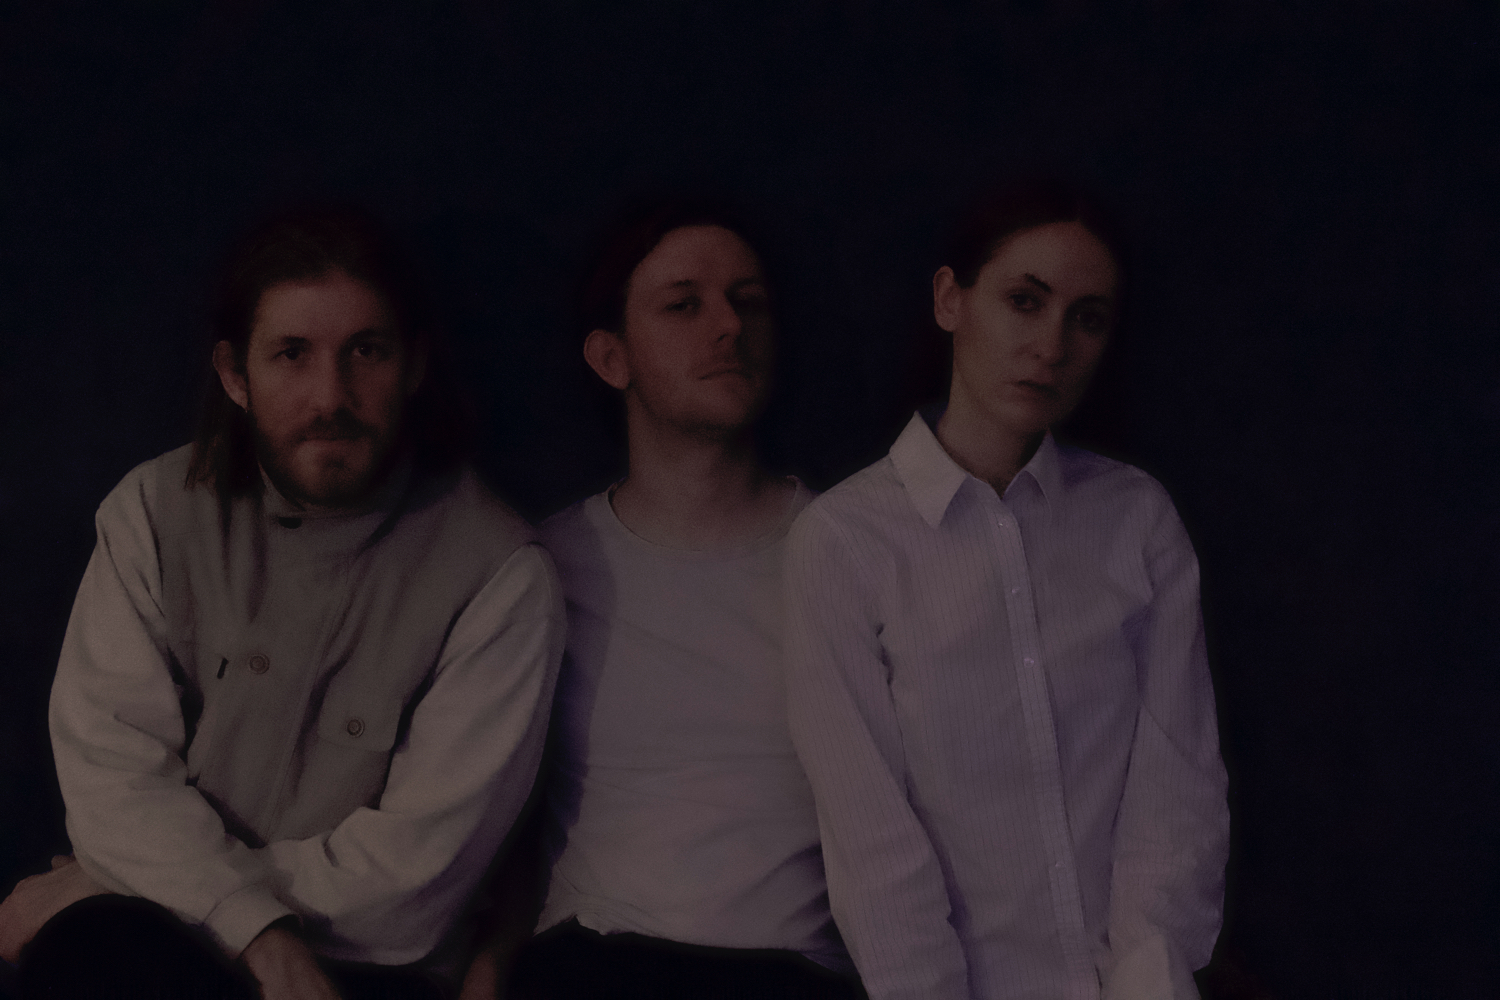 CHINAH reveal animated visuals for ethereal single 'What I've Become'